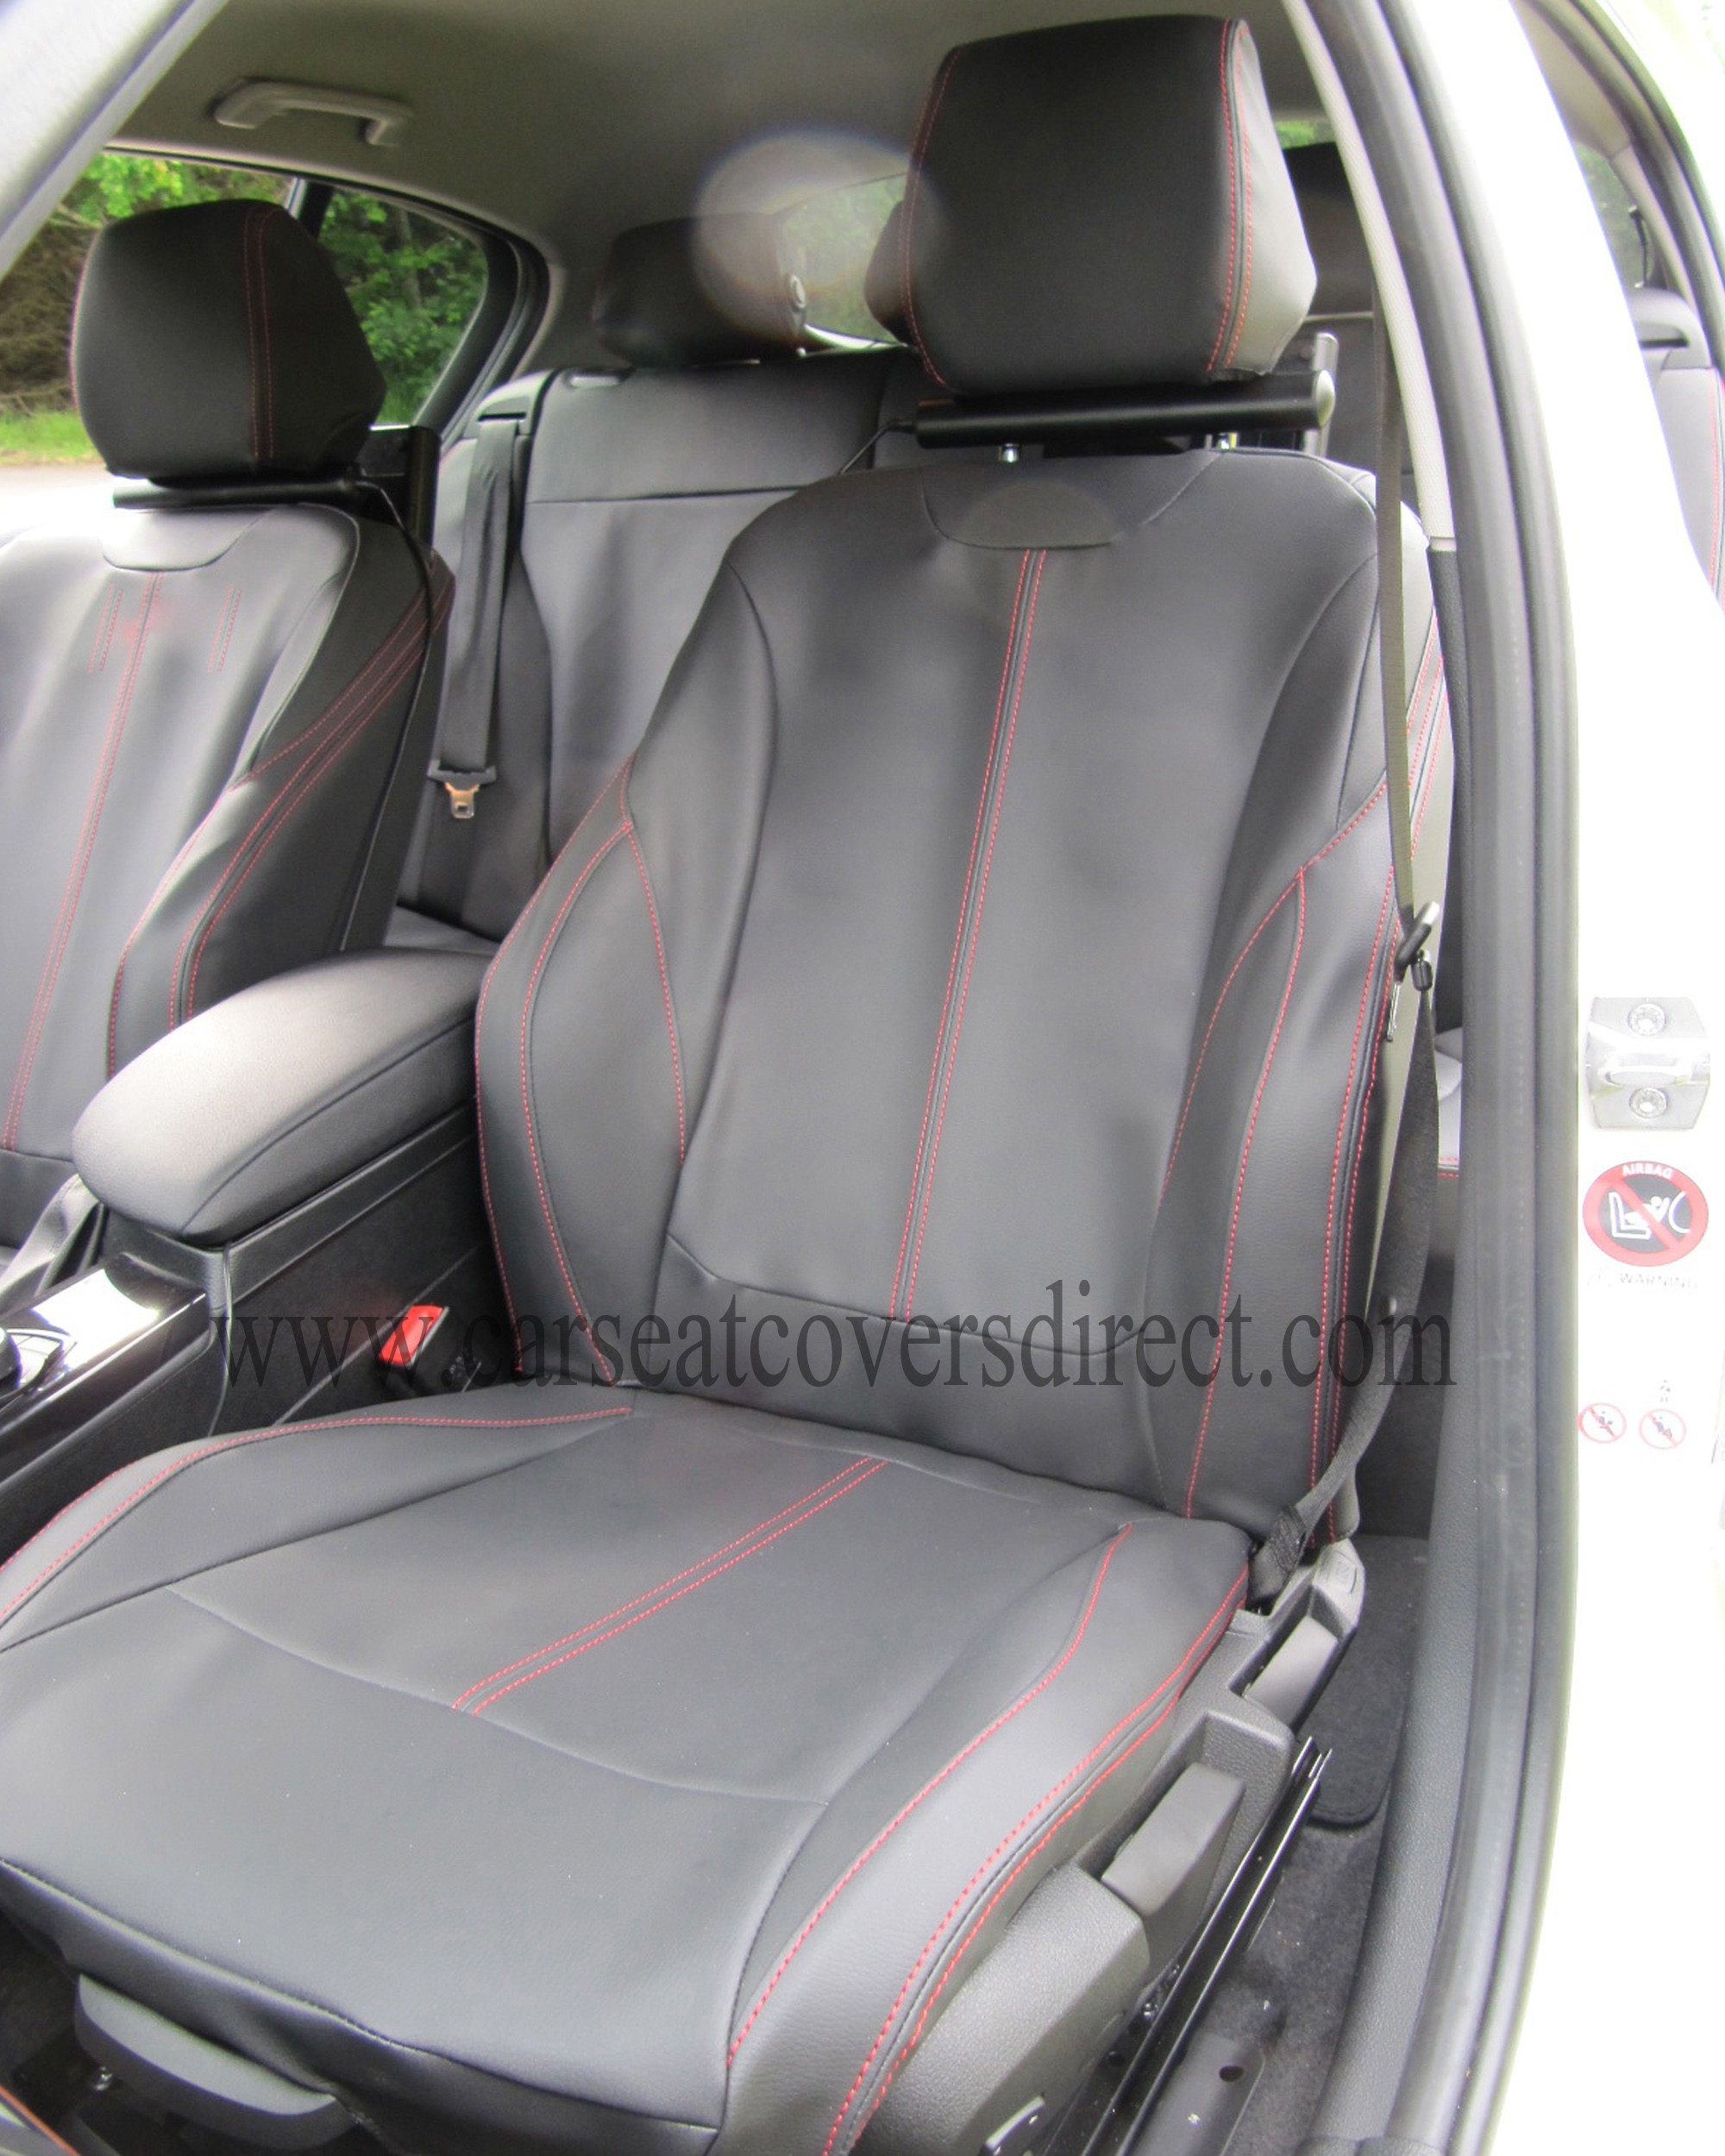 Search Results For Bmw Car Seat Covers Direct